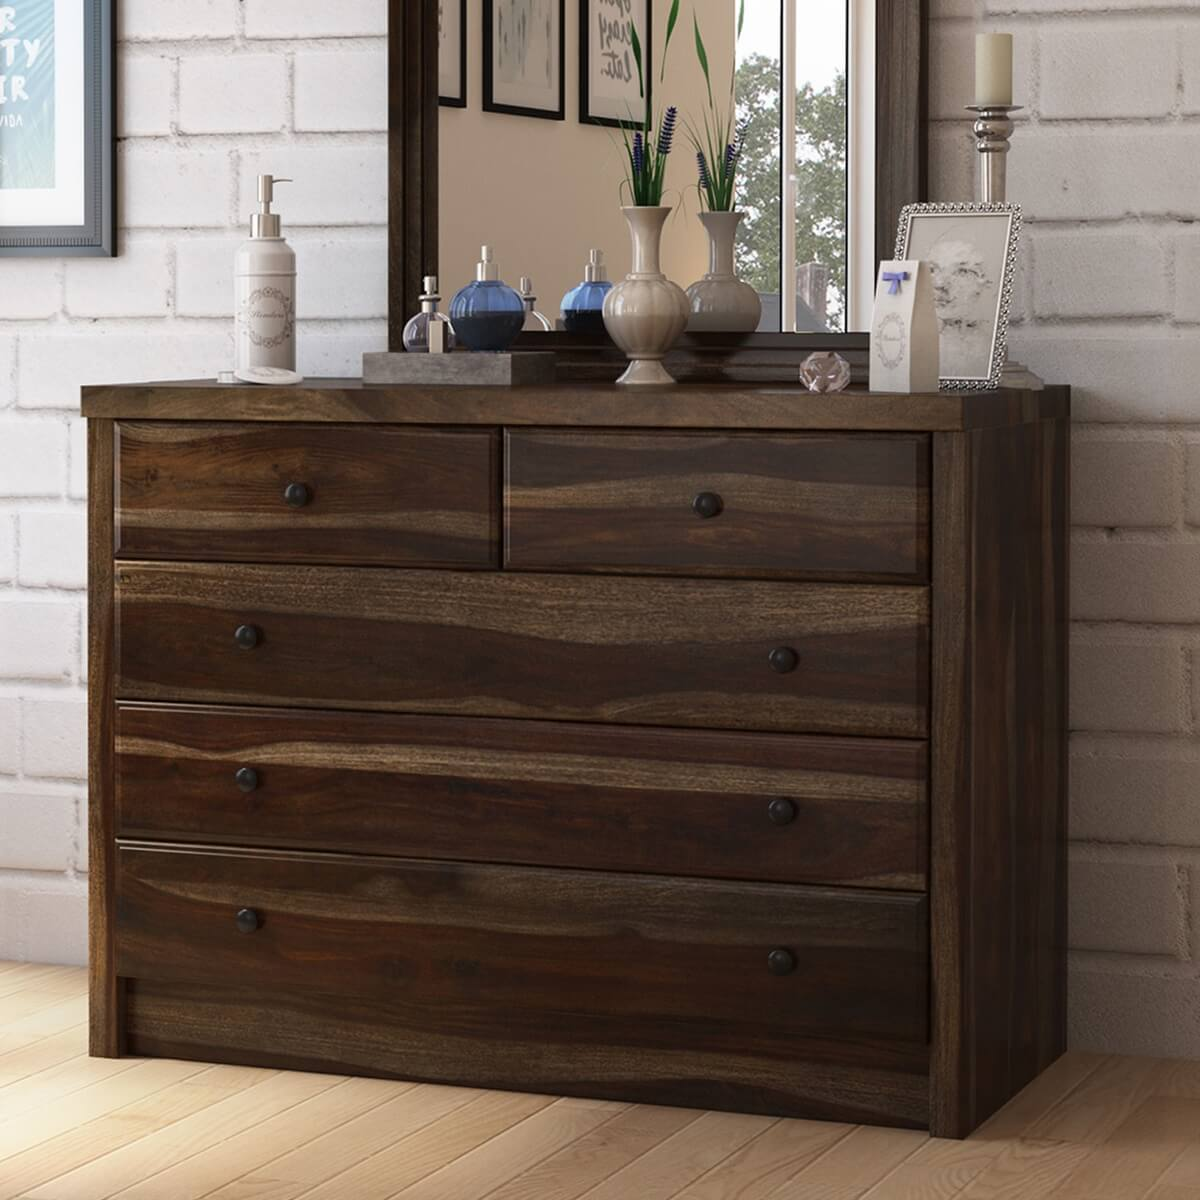 Paganus Solid Wood Rustic Style 5 Drawer Dresser